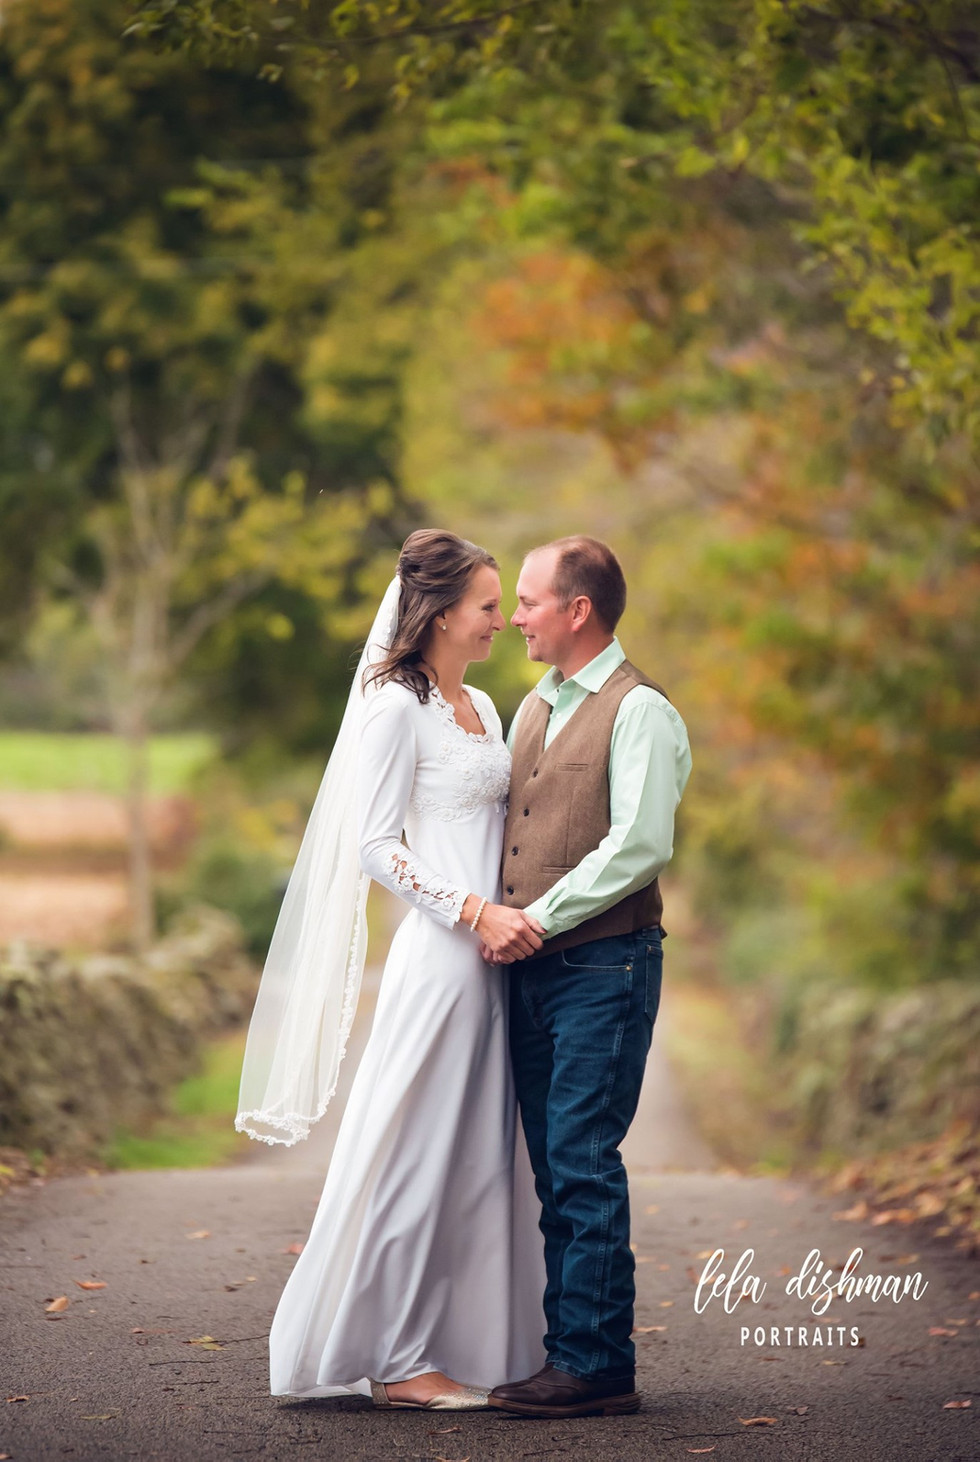 Cassie and Chris are Married! Monticello, Somerset KY wedding Photographer- Lela Dishman